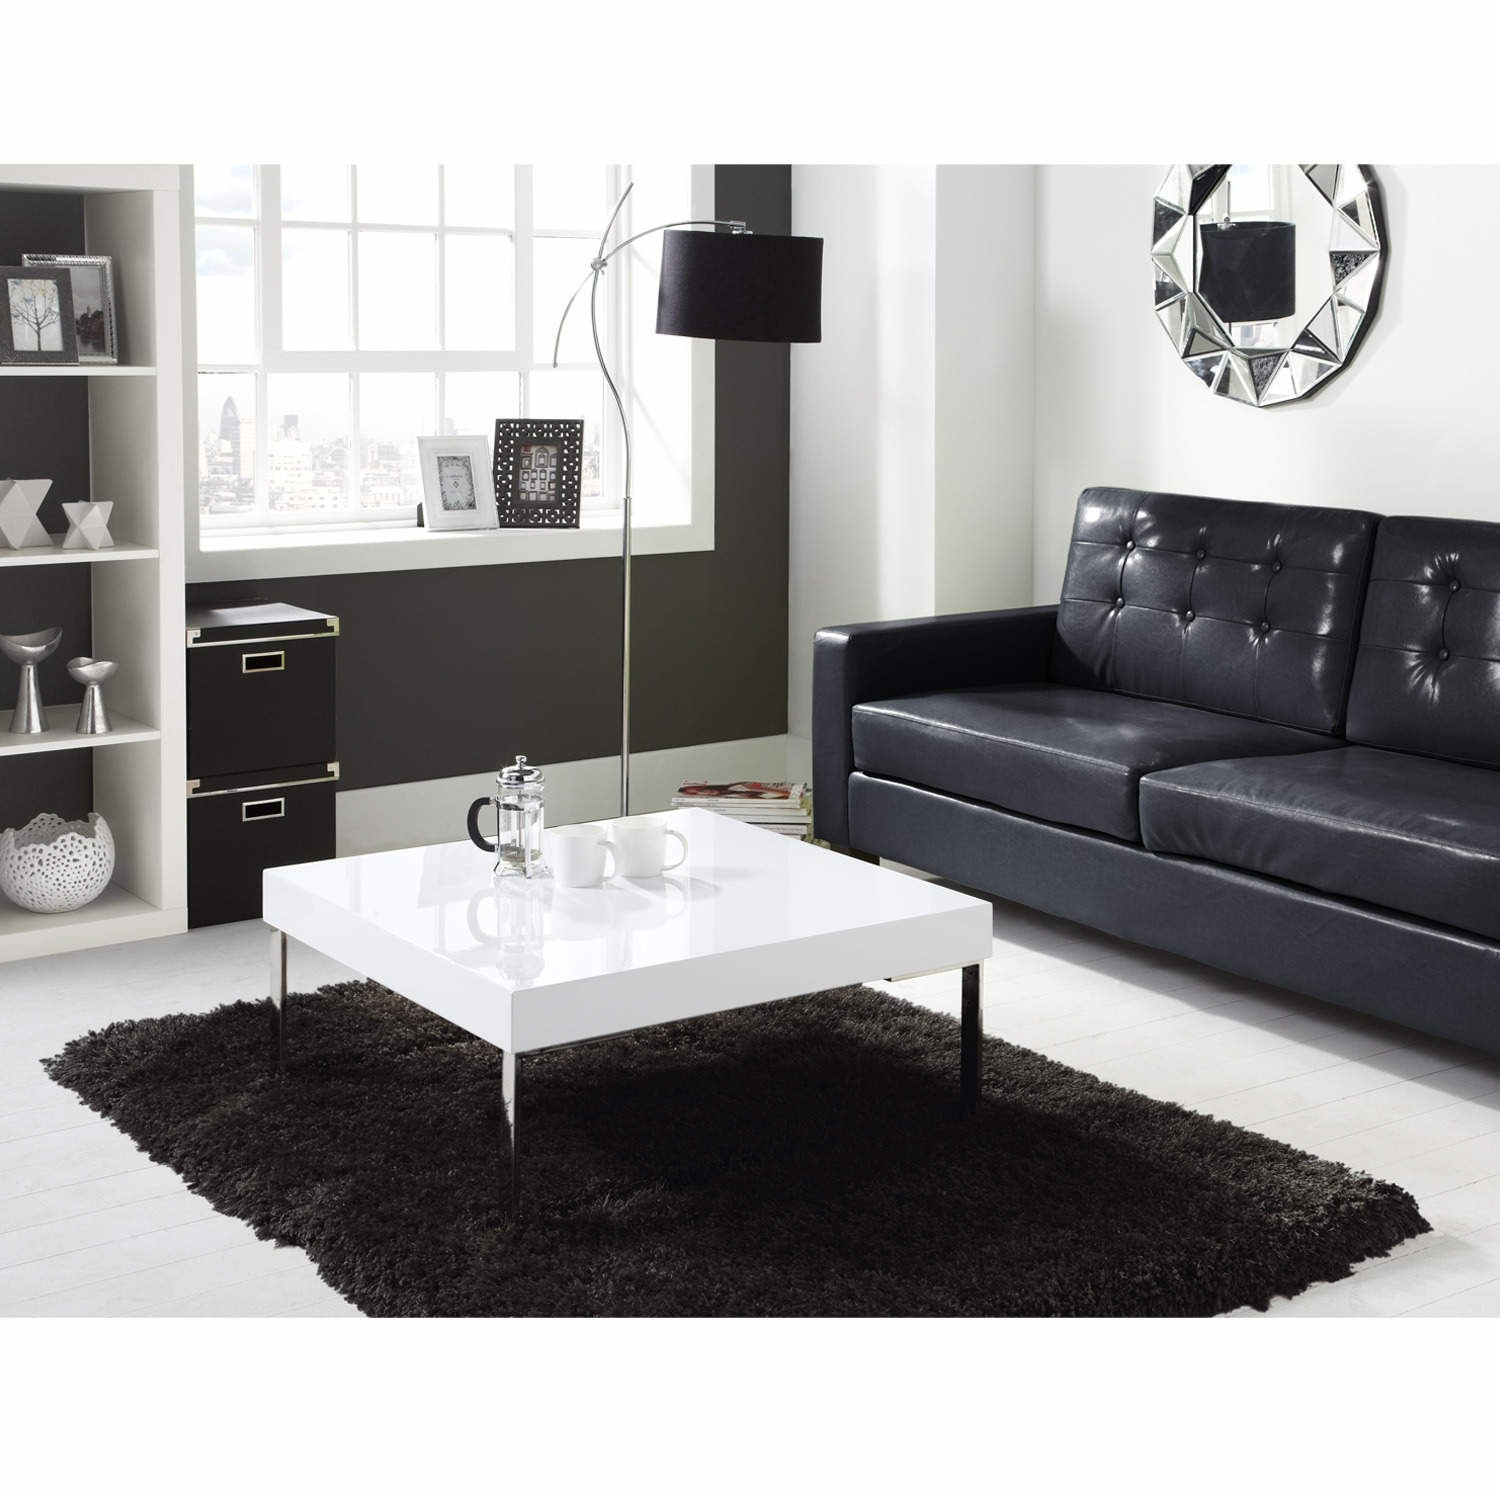 Super High Gloss Square White Coffee Table Tiffany Range Unemploymentrelief Wooden Chair Designs For Living Room Unemploymentrelieforg